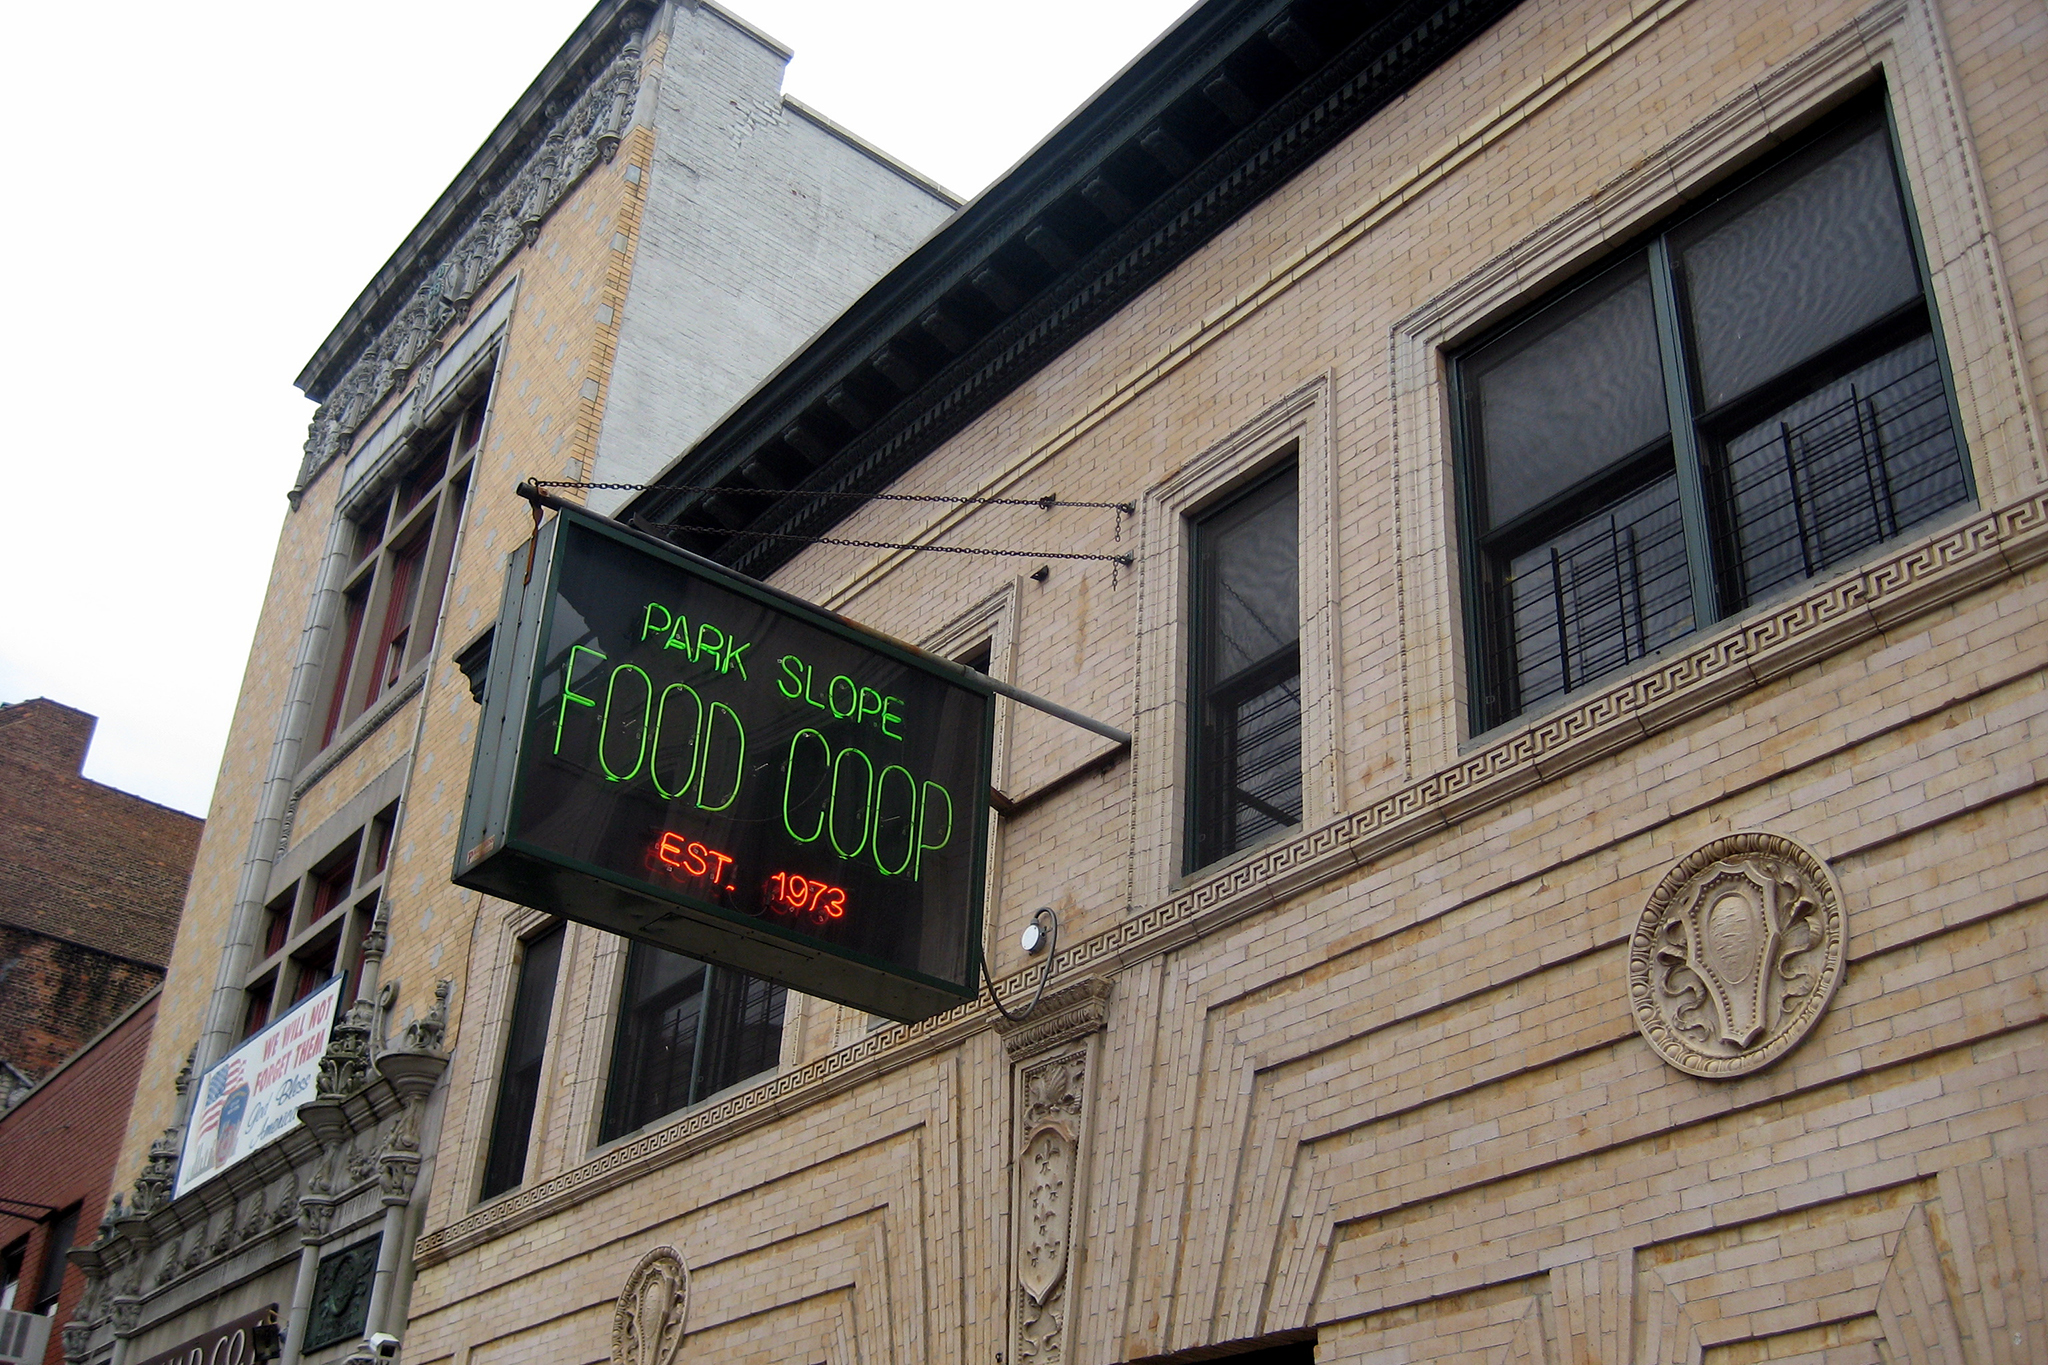 Park Slope Food Coop